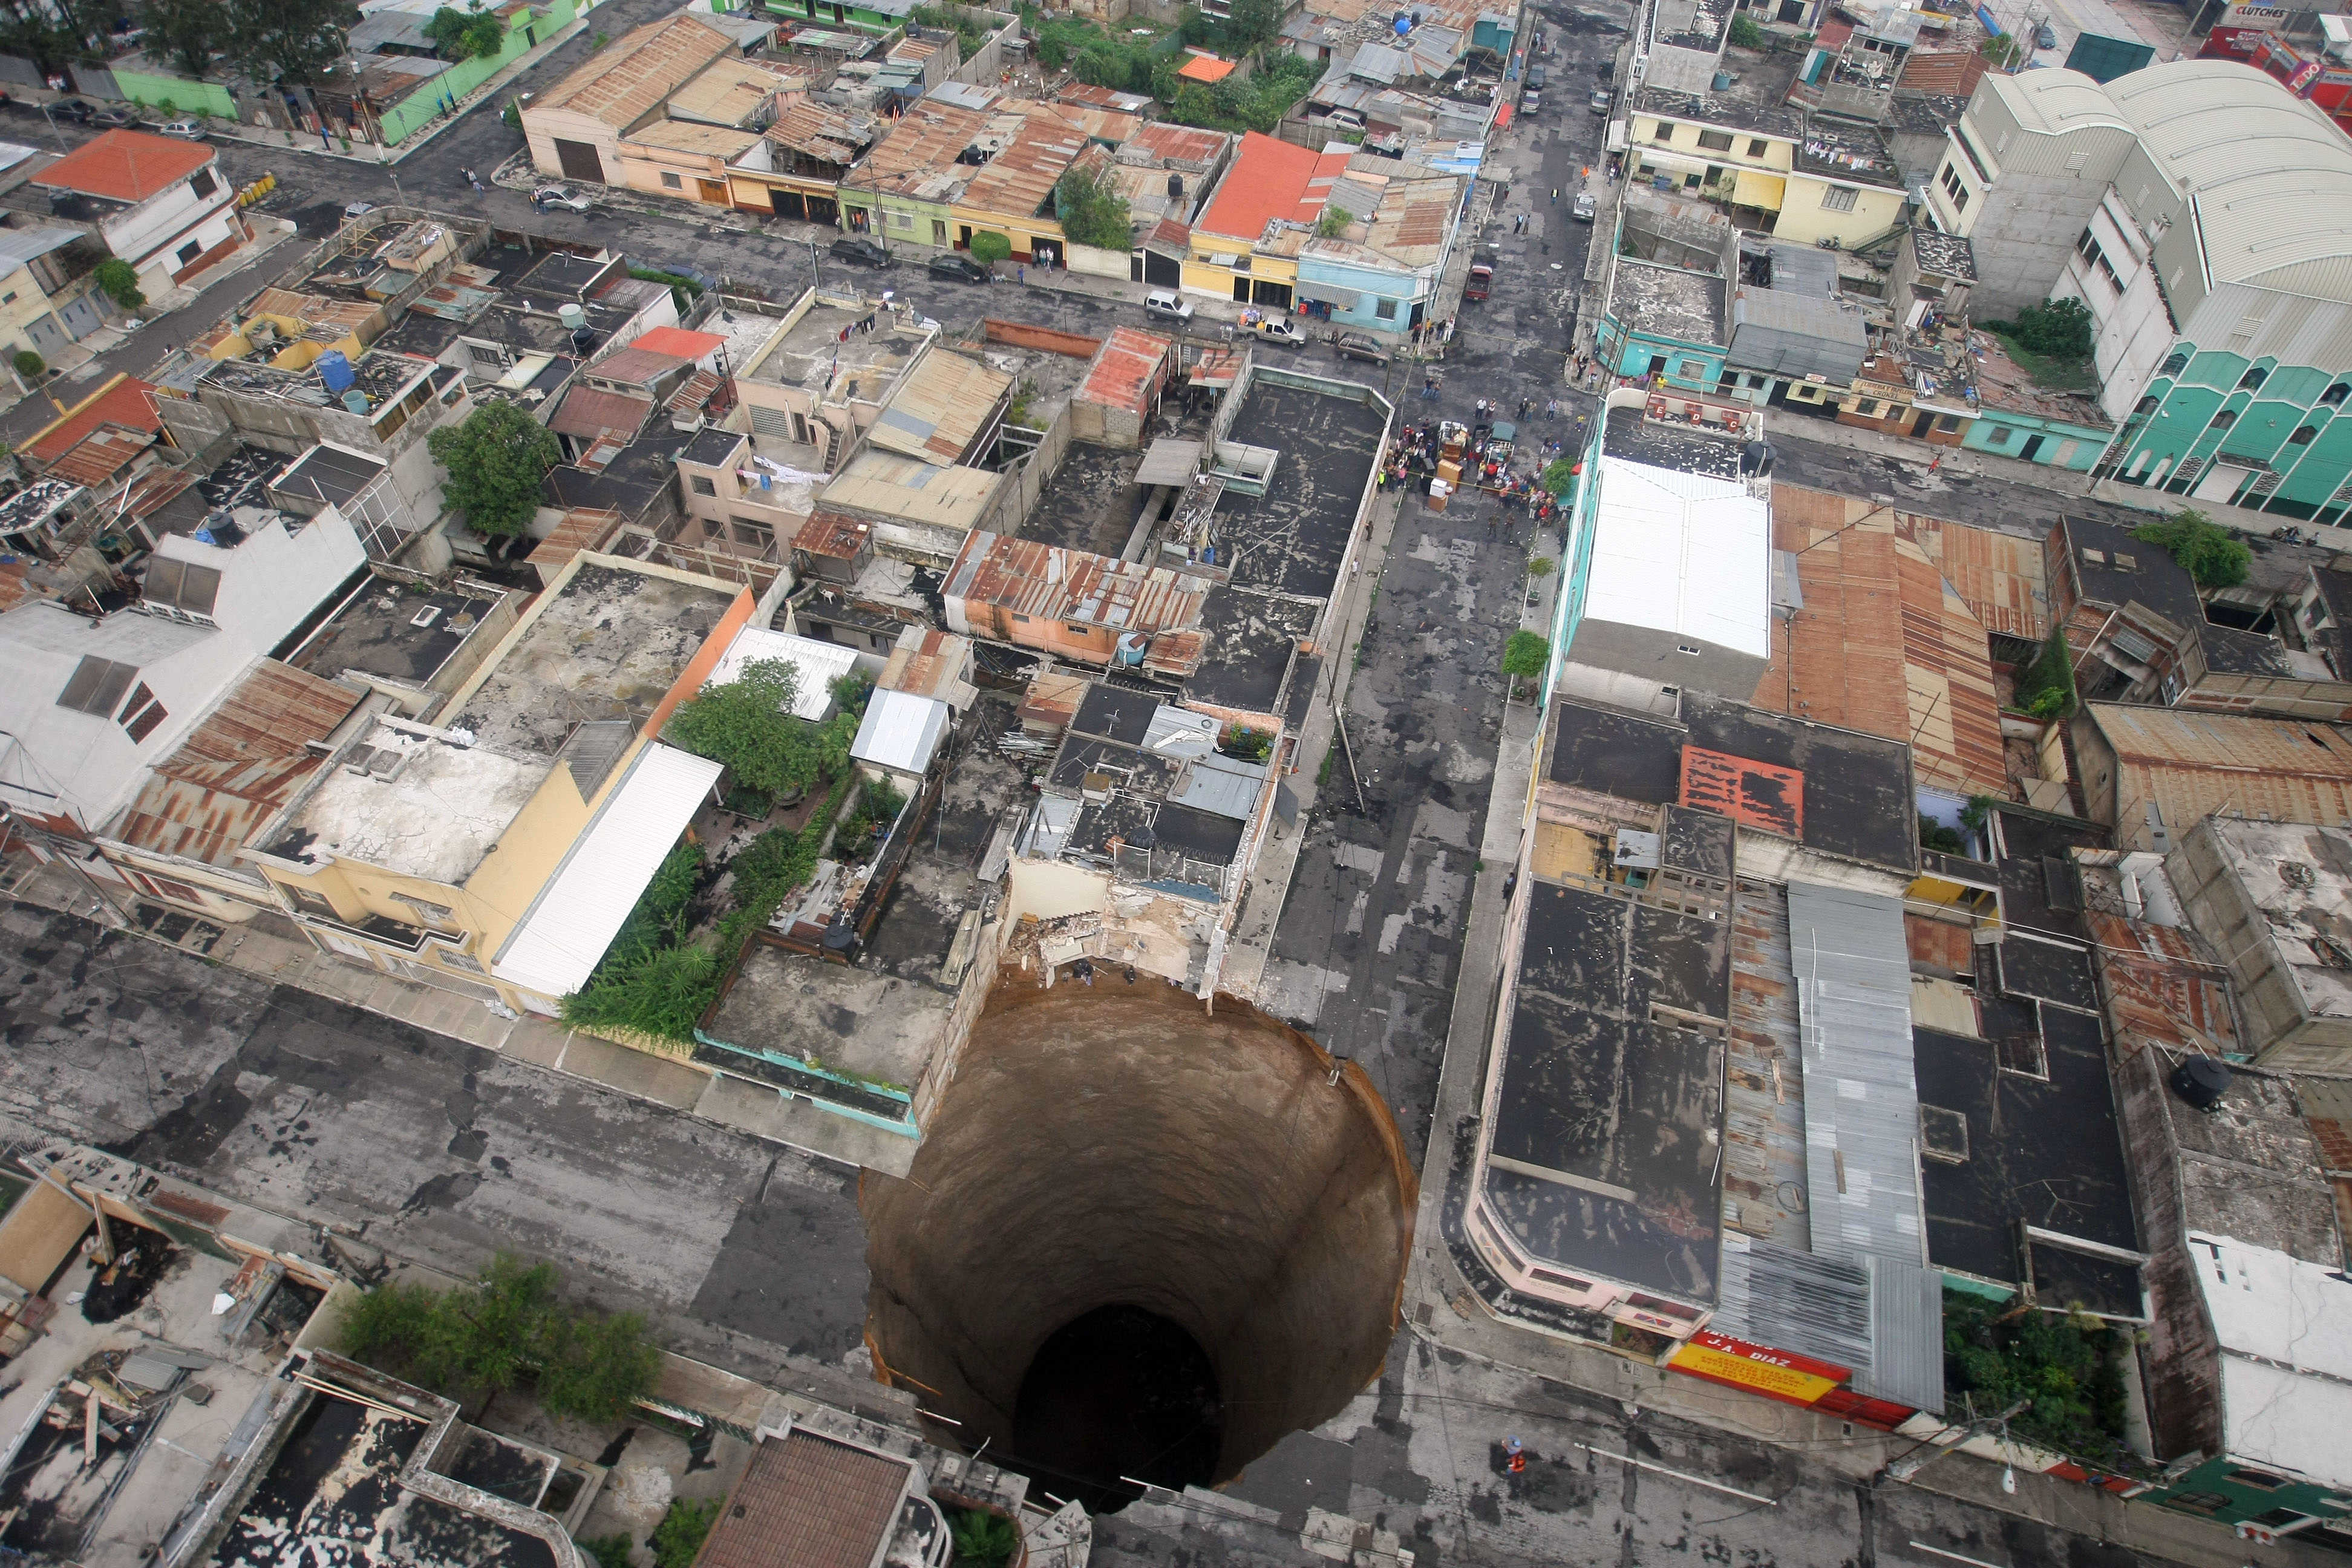 A sinkhole covers a street intersection in downtown Guatemala City, May 31, 2010. A day earlier authorities blamed the heavy rains caused by tropical storm Agatha as the cause of the crater that swallowed a a three-story building but now say they will be conducting further studies to determine the cause.